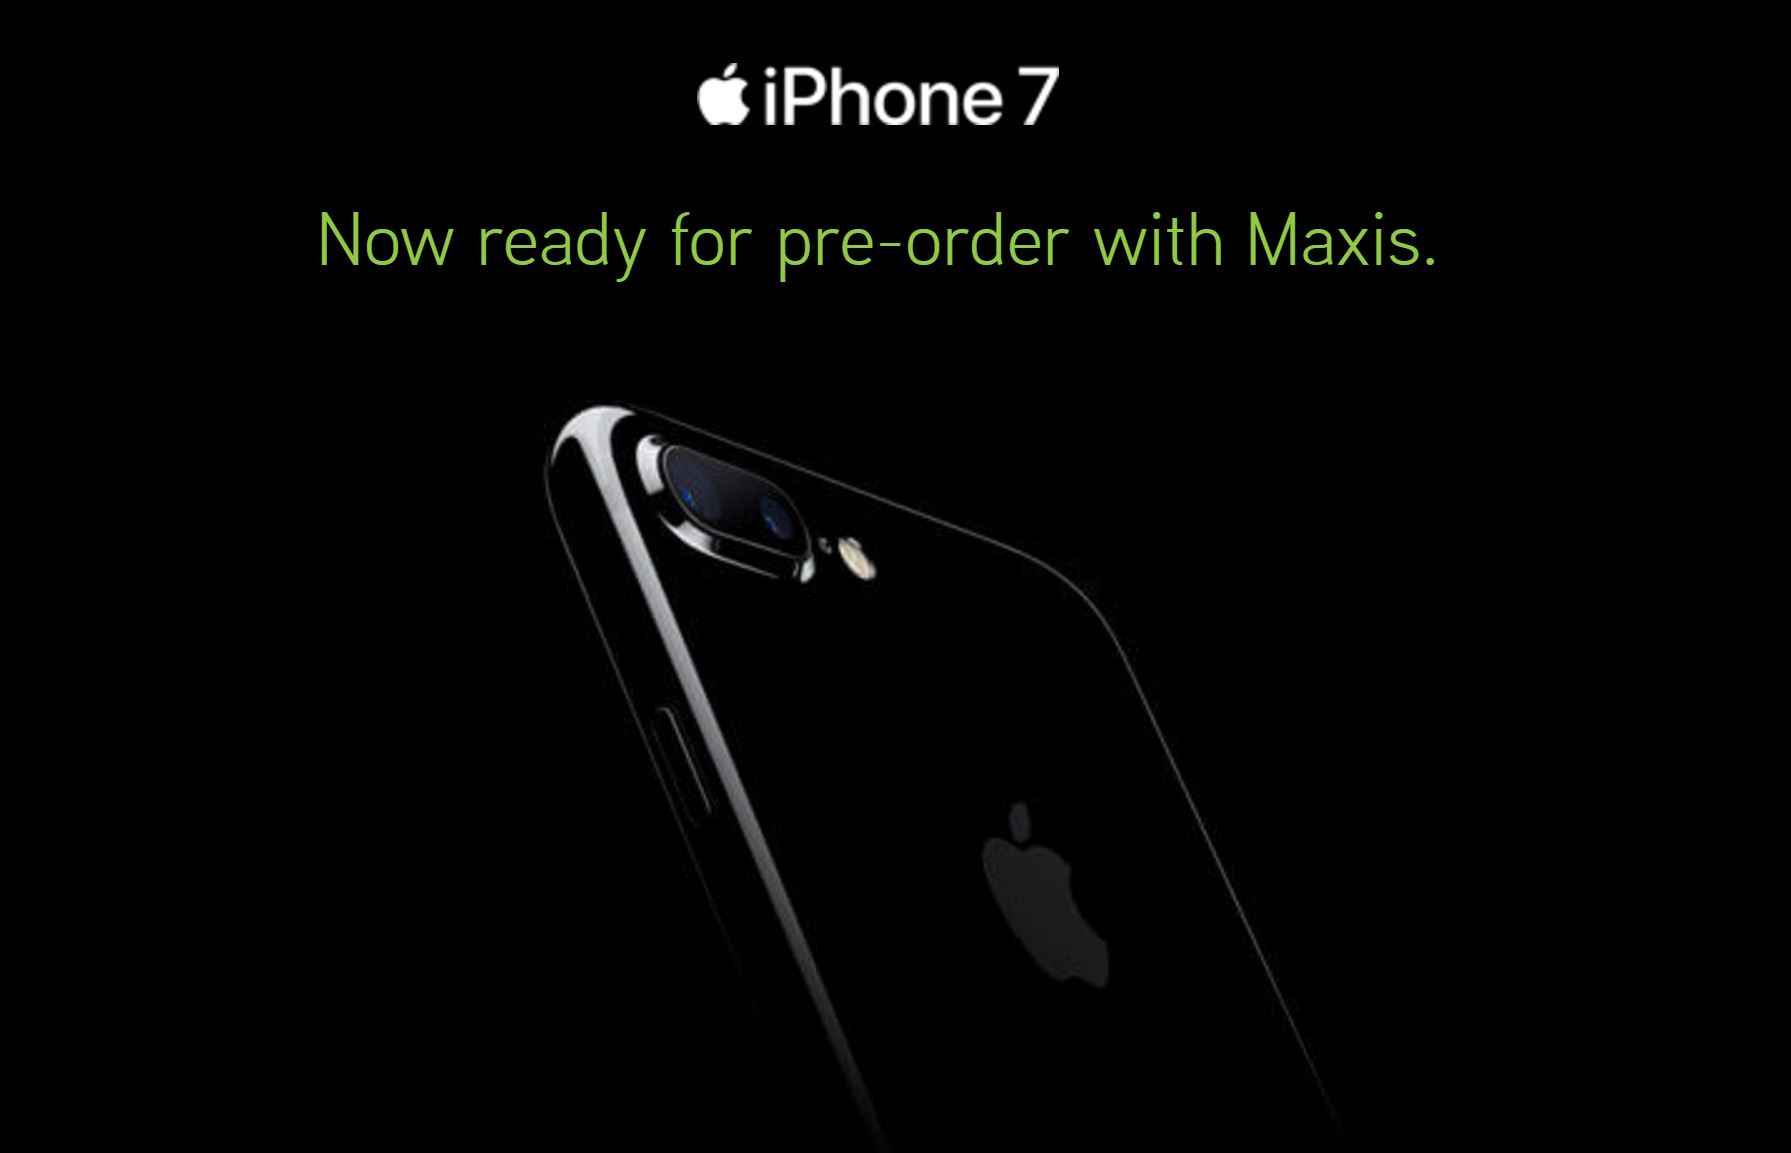 iphone pre order maxis unveils pre order for iphone 7 and iphone 7 plus 3264